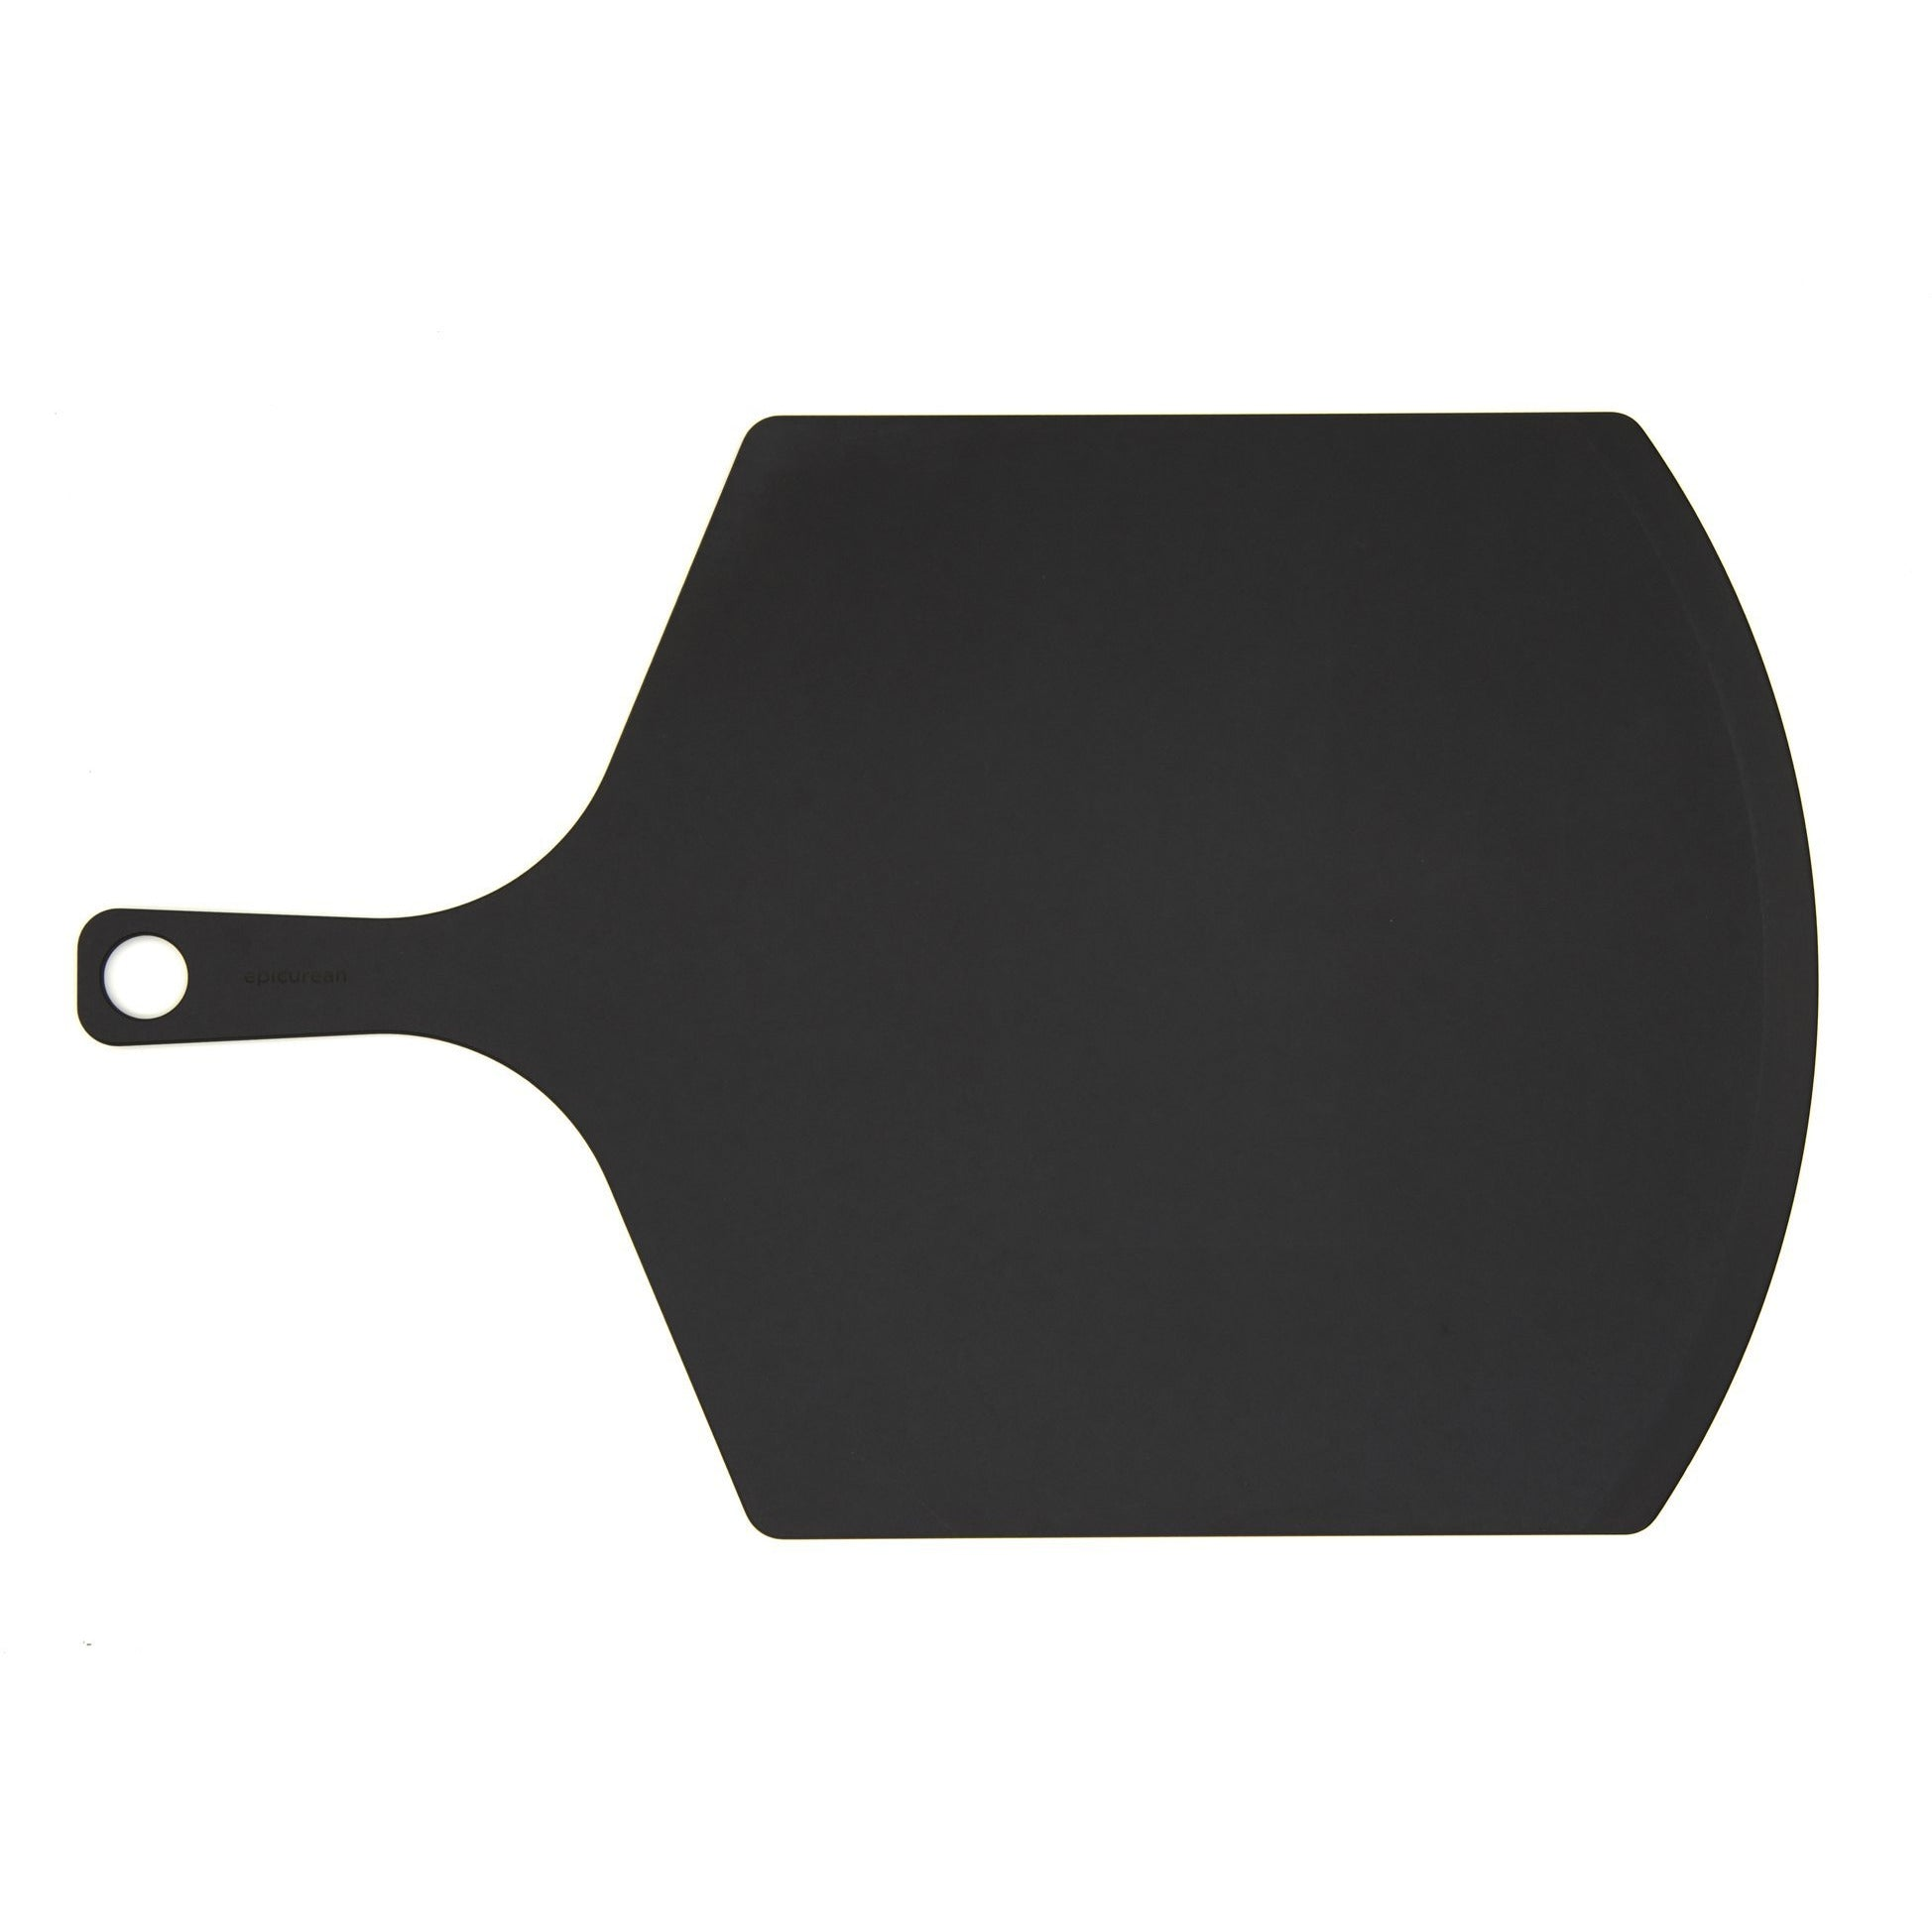 "Epicurean Pizza Peel 21x14"" Slate"